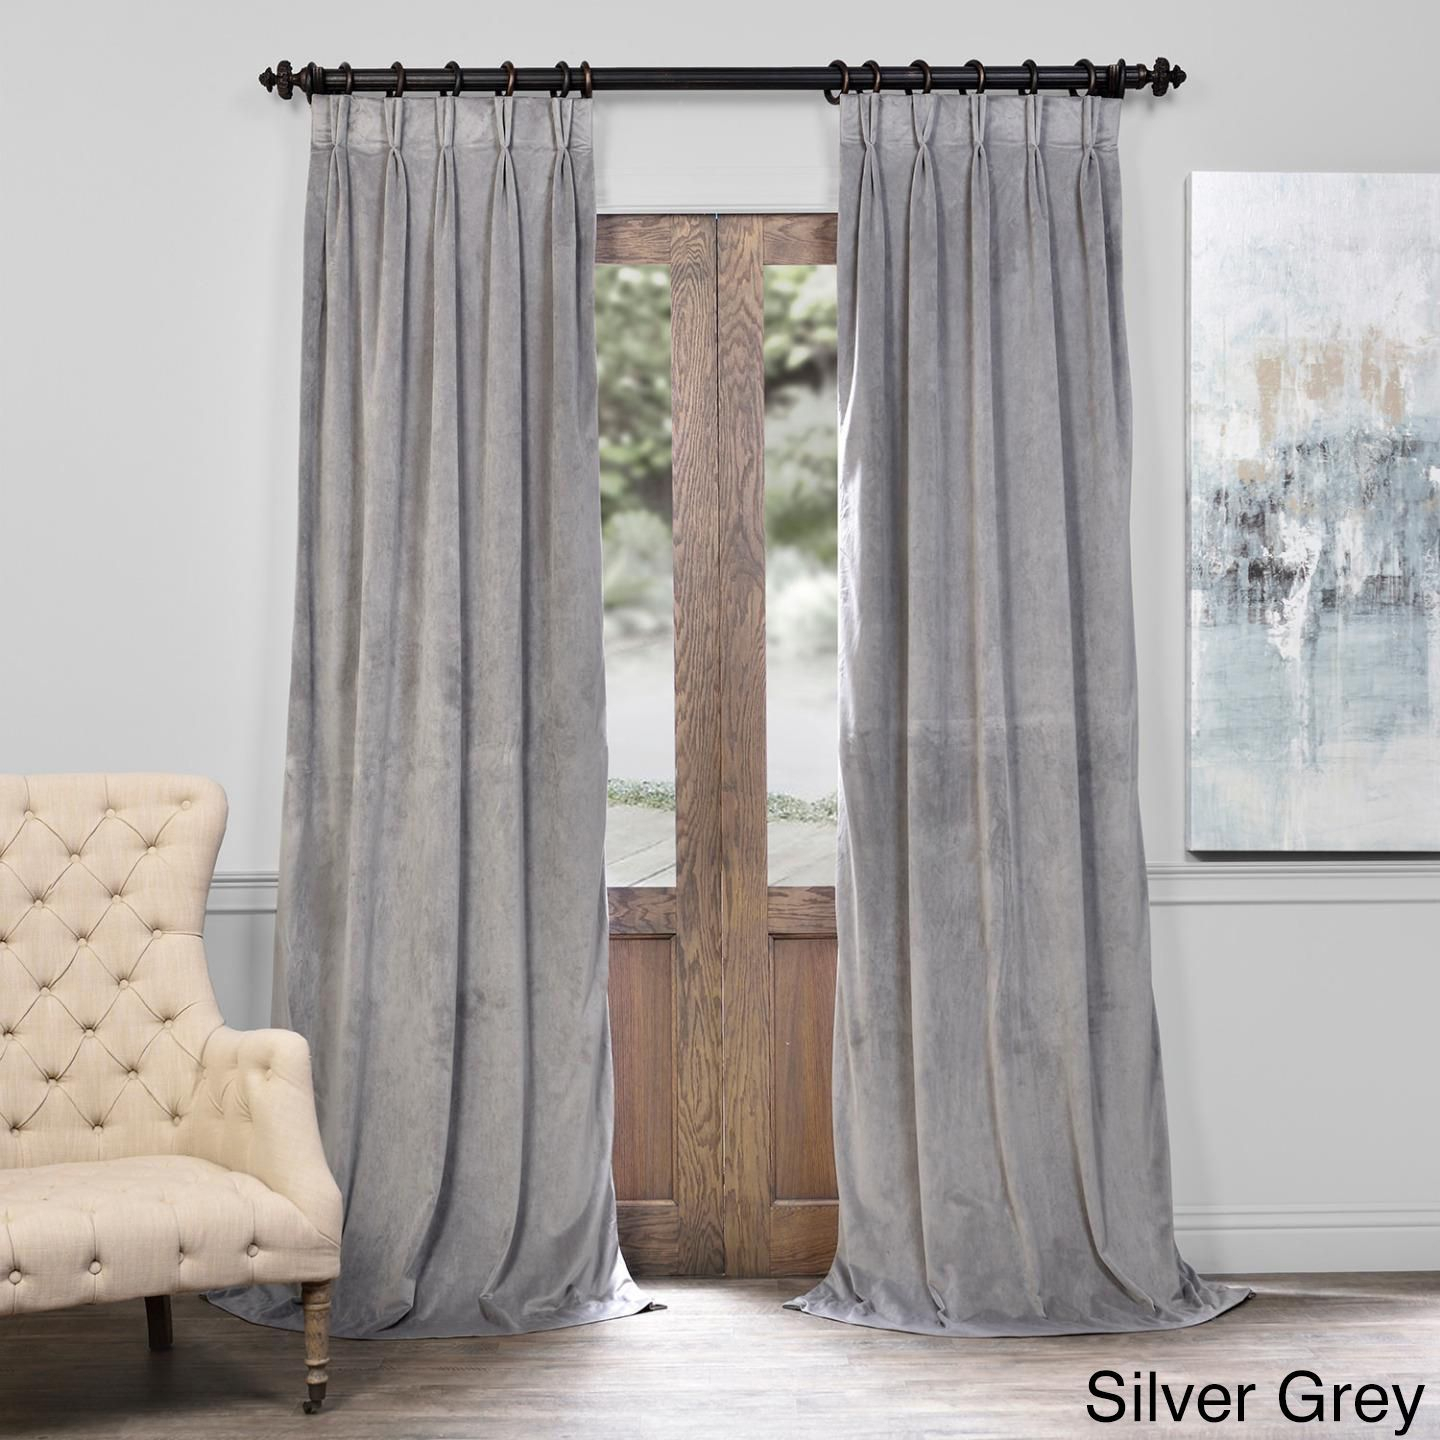 Exclusive Fabrics Signature Pinch Pleated Blackout Solid With Regard To Signature Pinch Pleated Blackout Solid Velvet Curtain Panels (View 12 of 36)